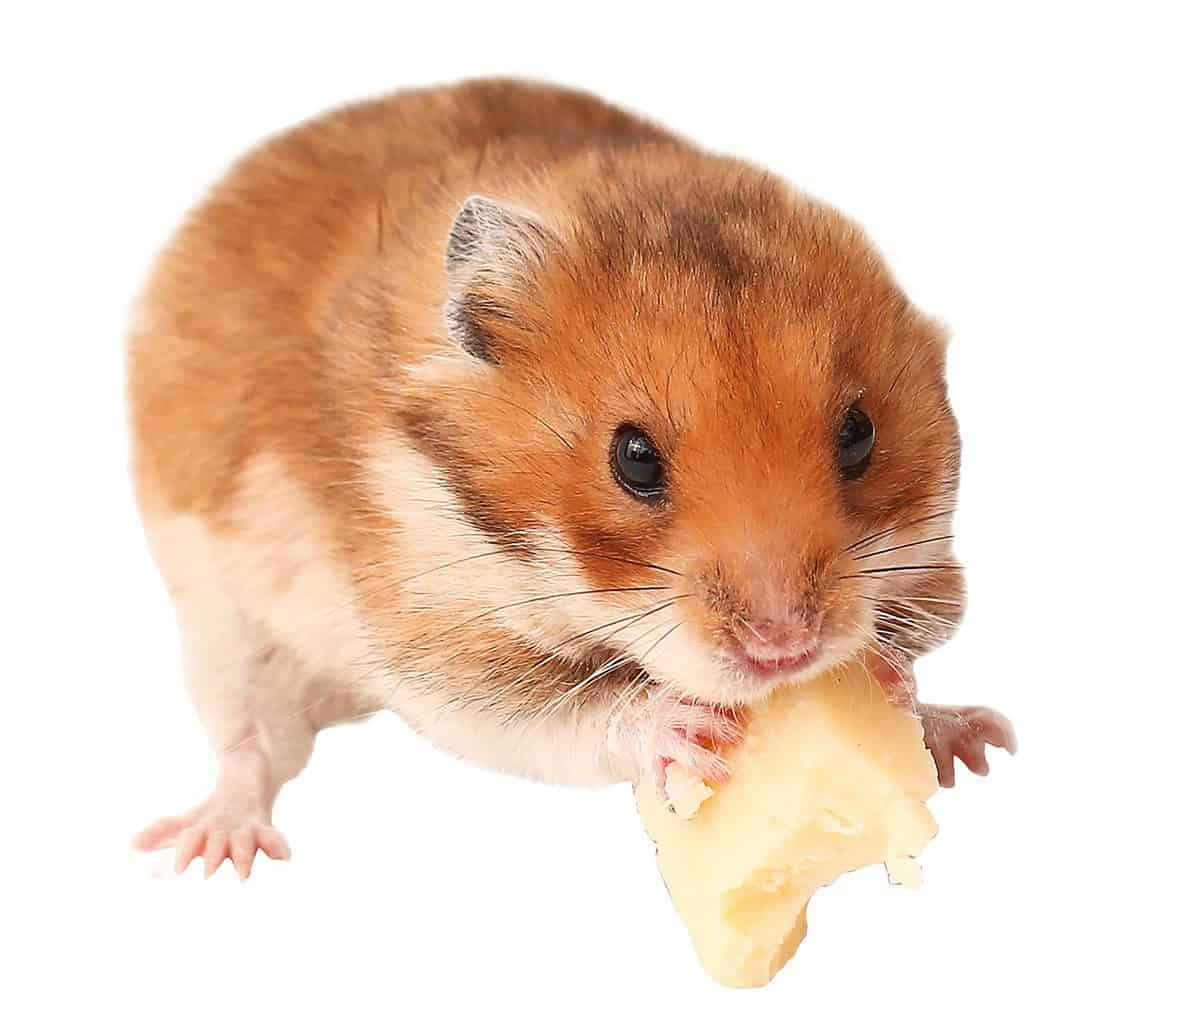 Hamster is eating cheese